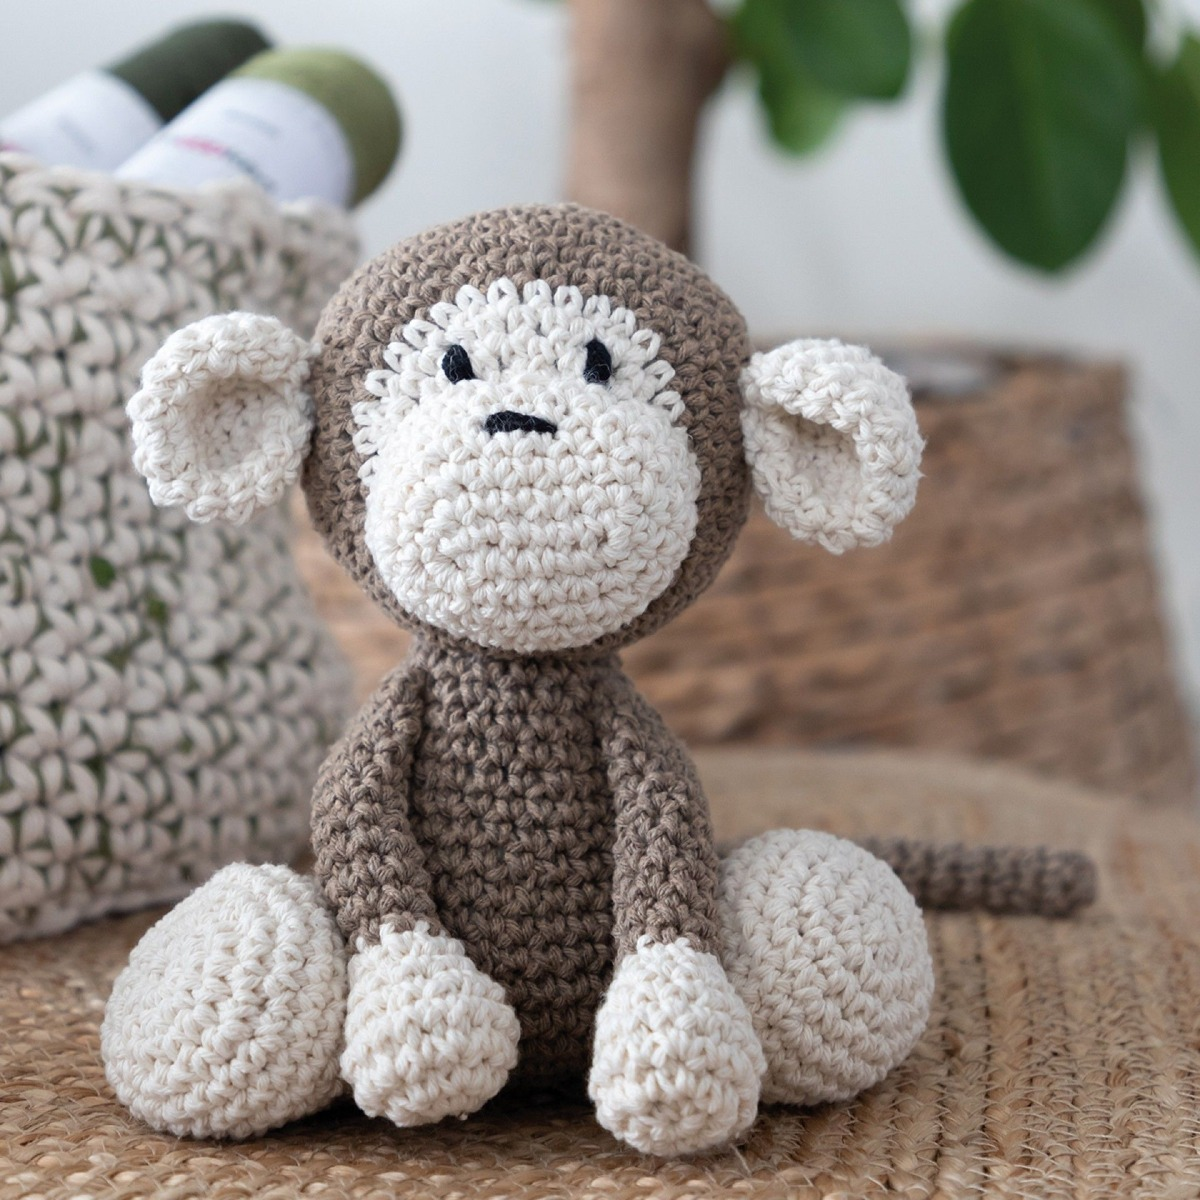 Monkey arigurumi crochet kit